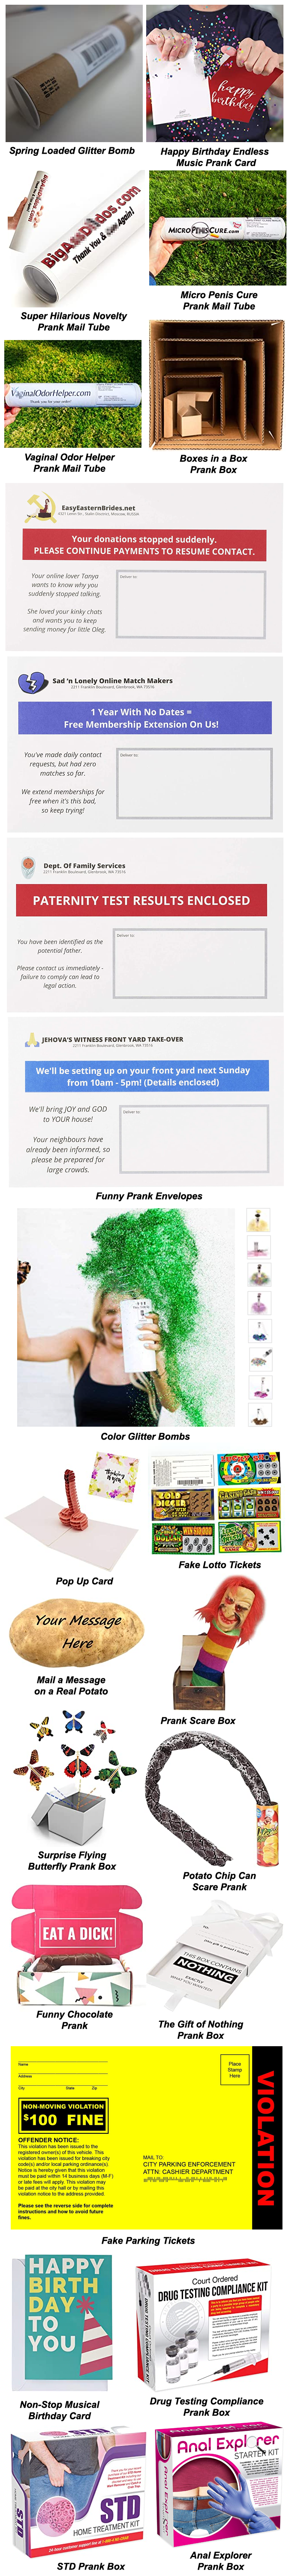 EMBARRASSING PRANKS YOU CAN MAIL